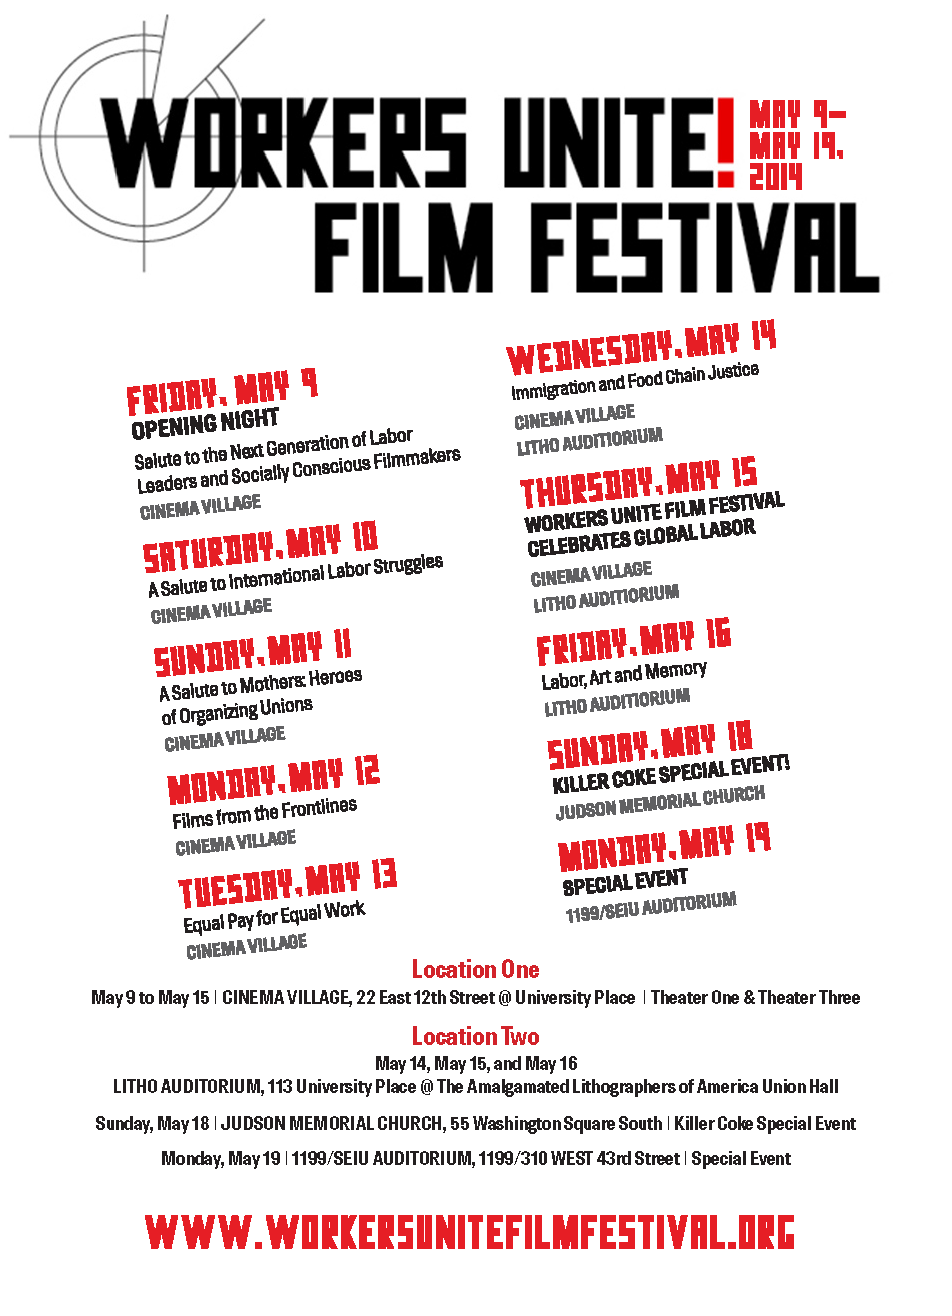 Workers Unite Film Festival Overview